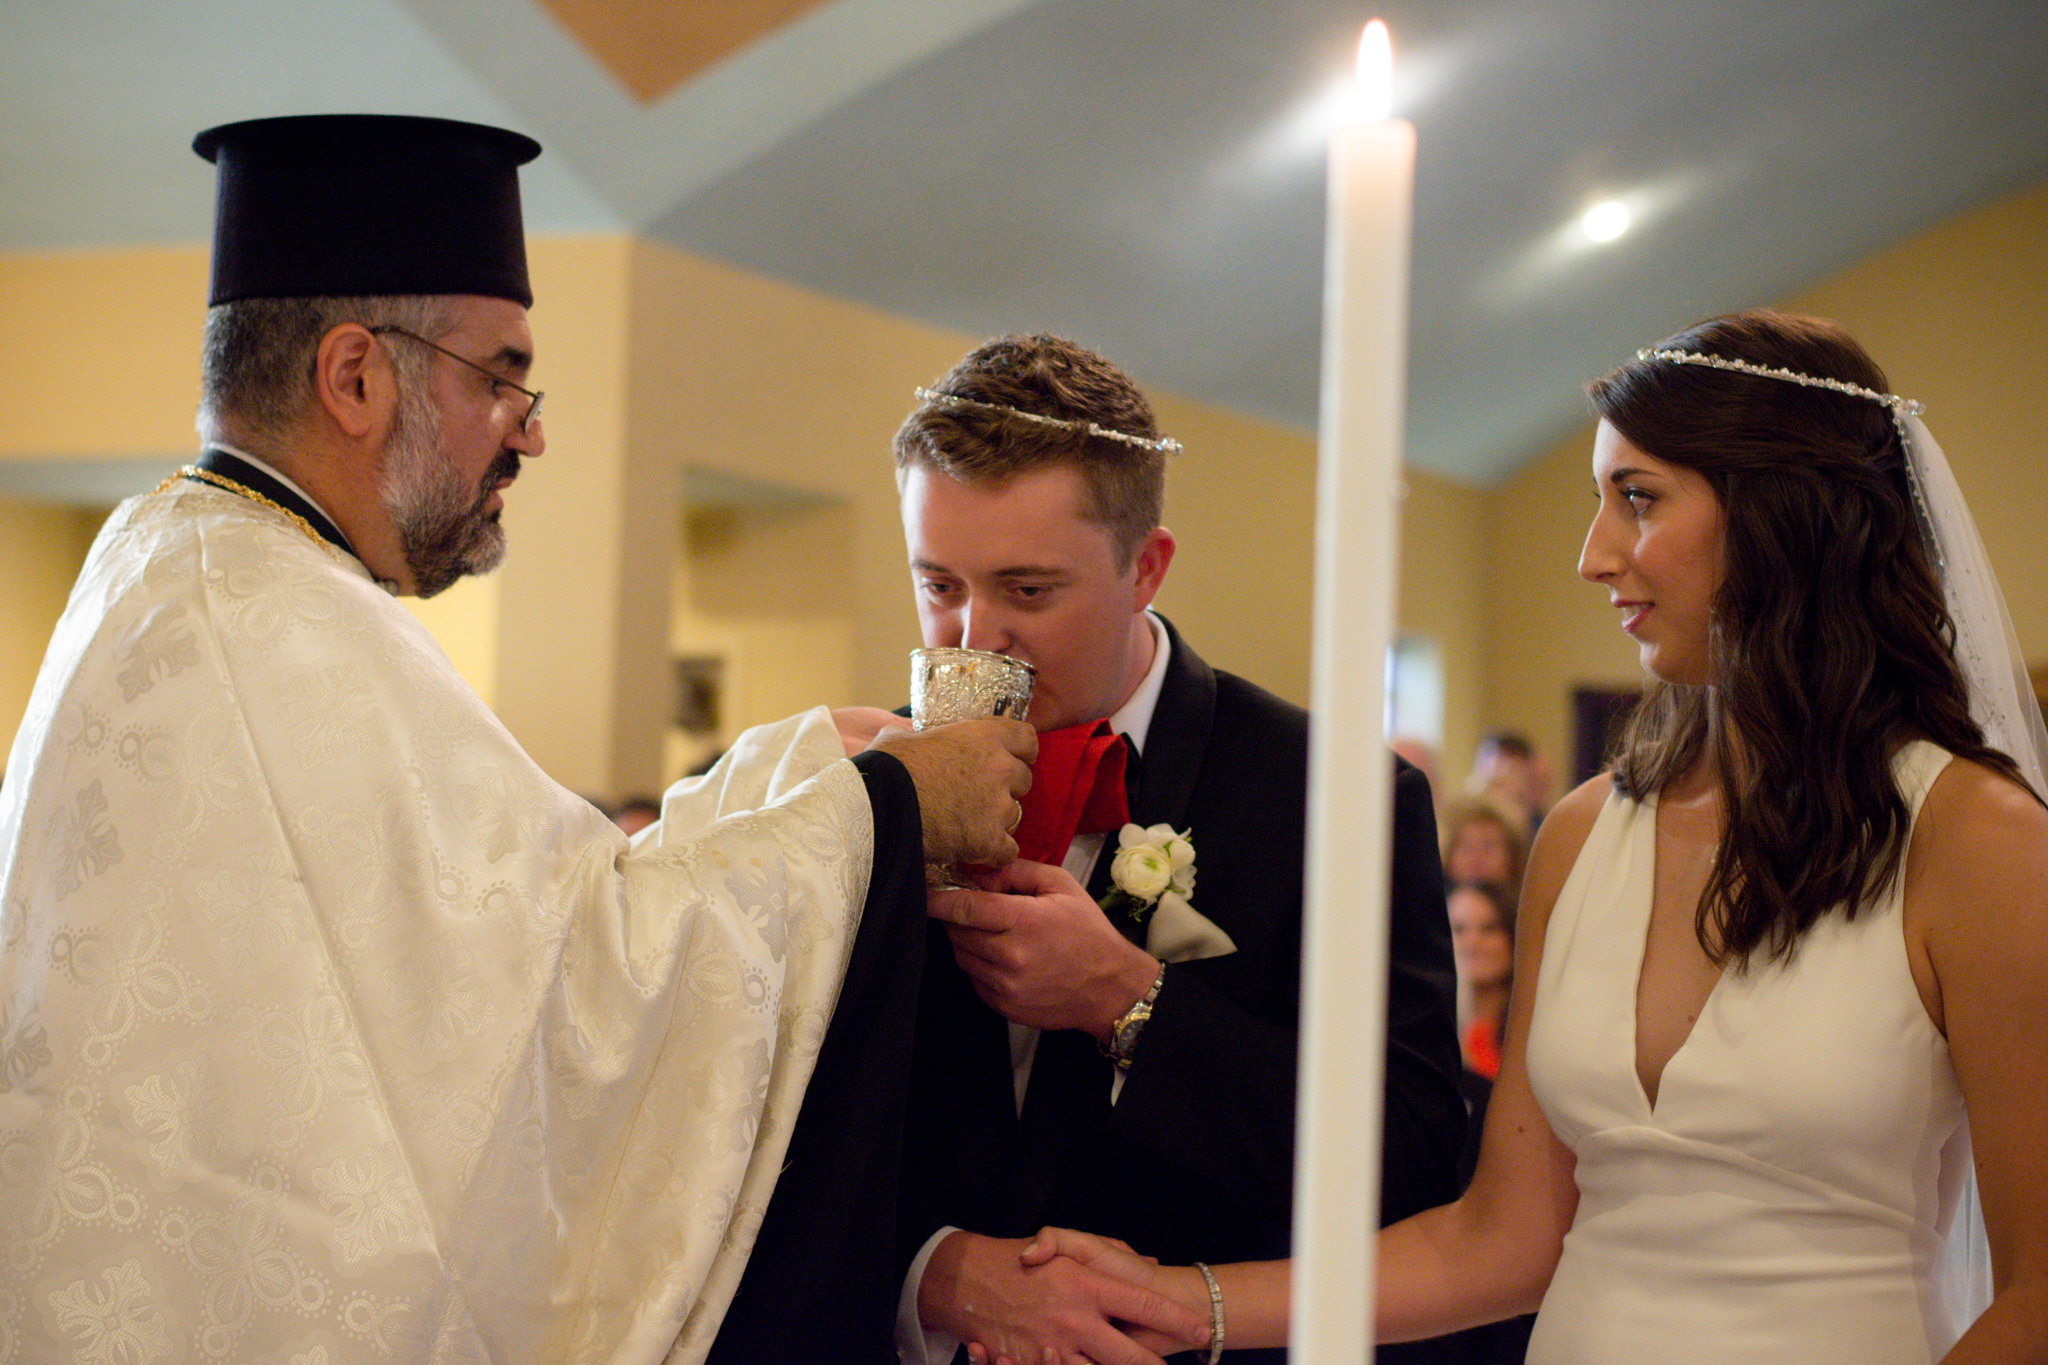 greek orthodox wedding (61 of 118).JPG